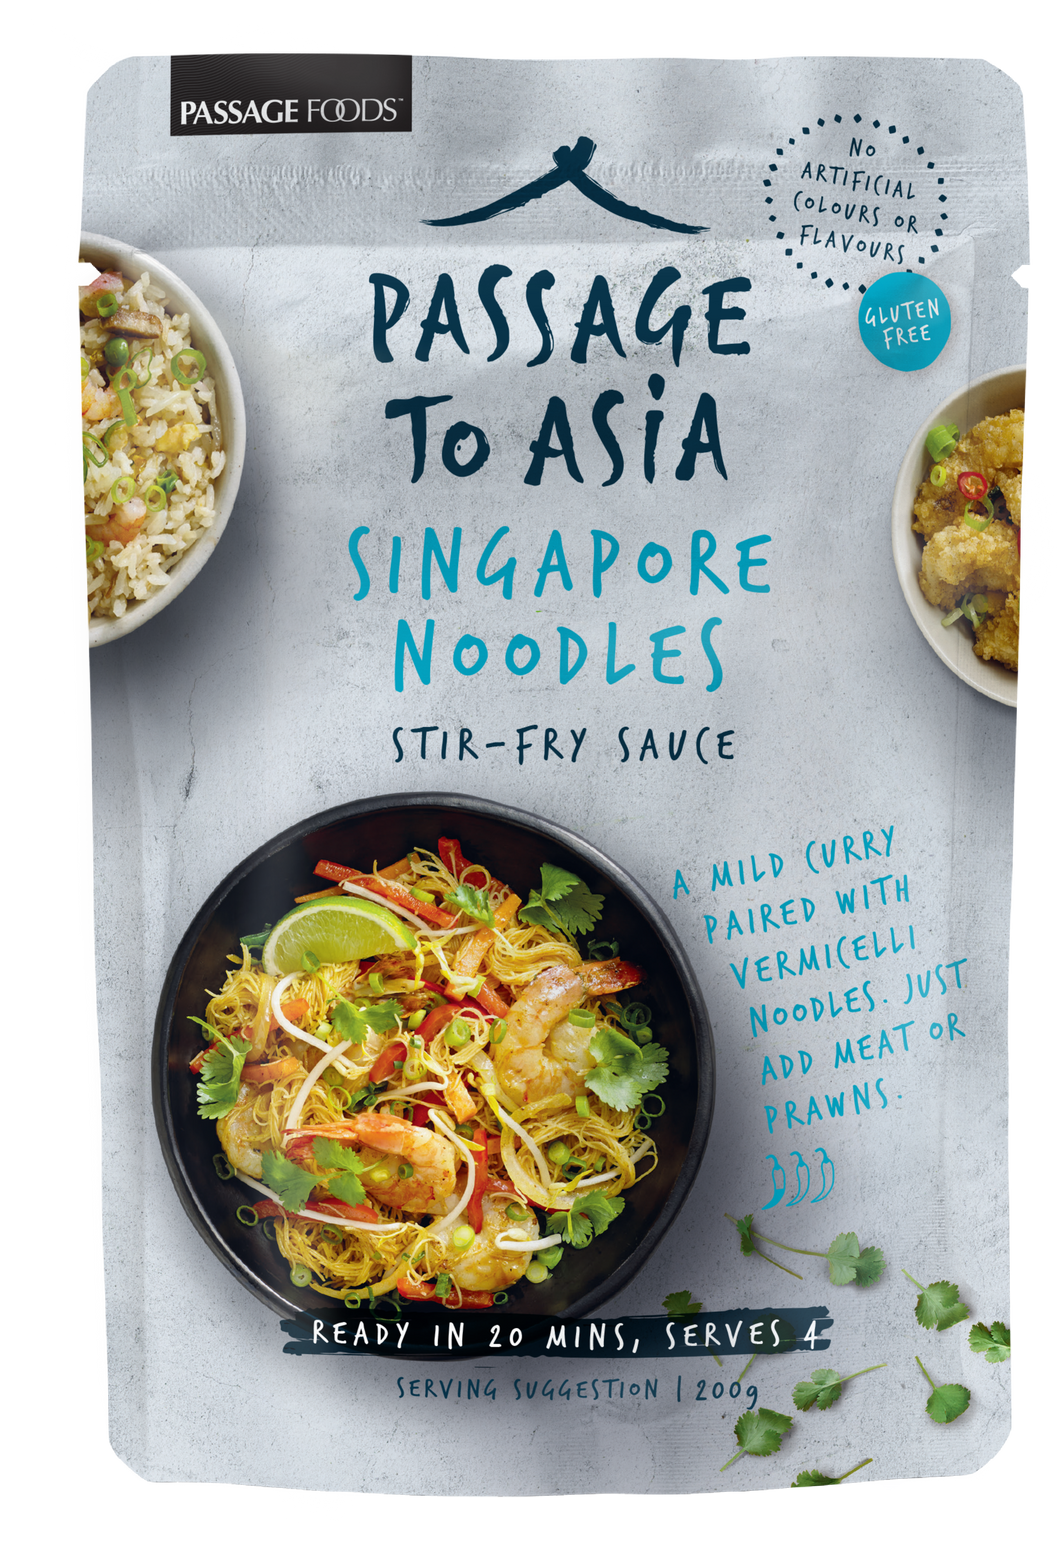 Passage to Asia - Singapore Noodles Stir Fry Sauce